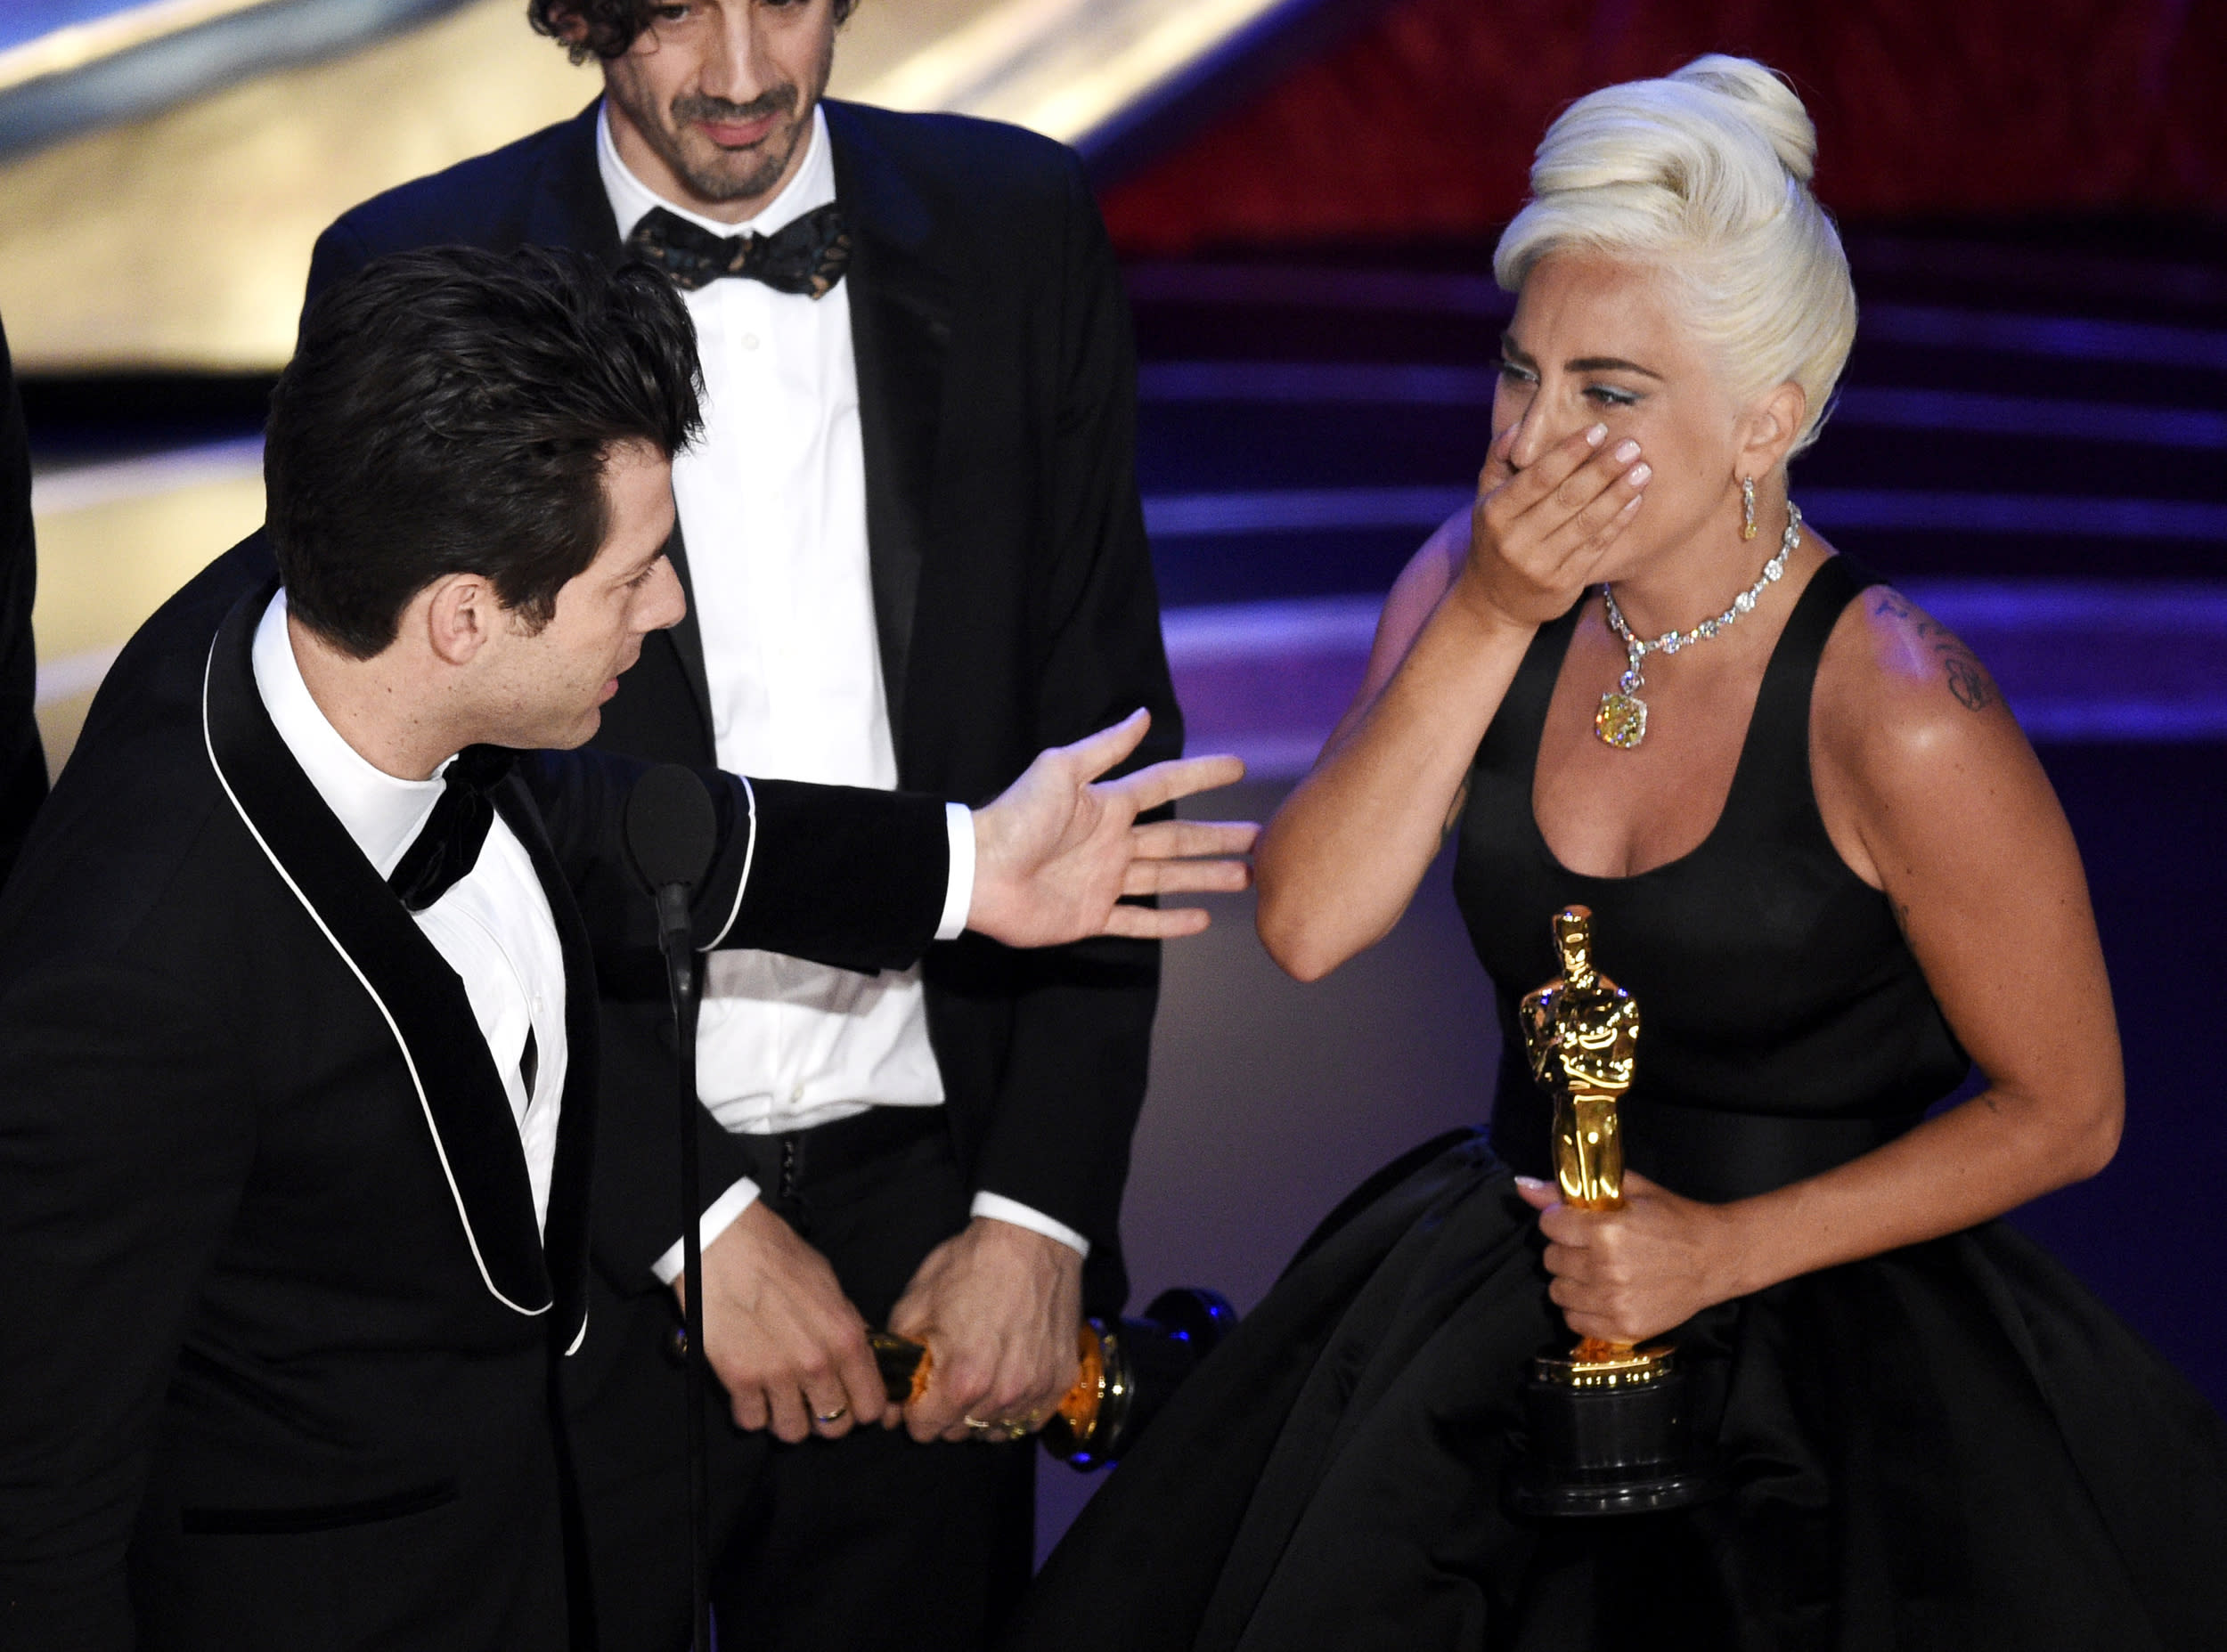 """Mark Ronson, from left, Anthony Rossomando and Lady Gaga accept the award for best original song for """"Shallow"""" from """"A Star Is Born"""" at the Oscars on Sunday, Feb. 24, 2019, at the Dolby Theatre in Los Angeles. (Photo by Chris Pizzello/Invision/AP)"""